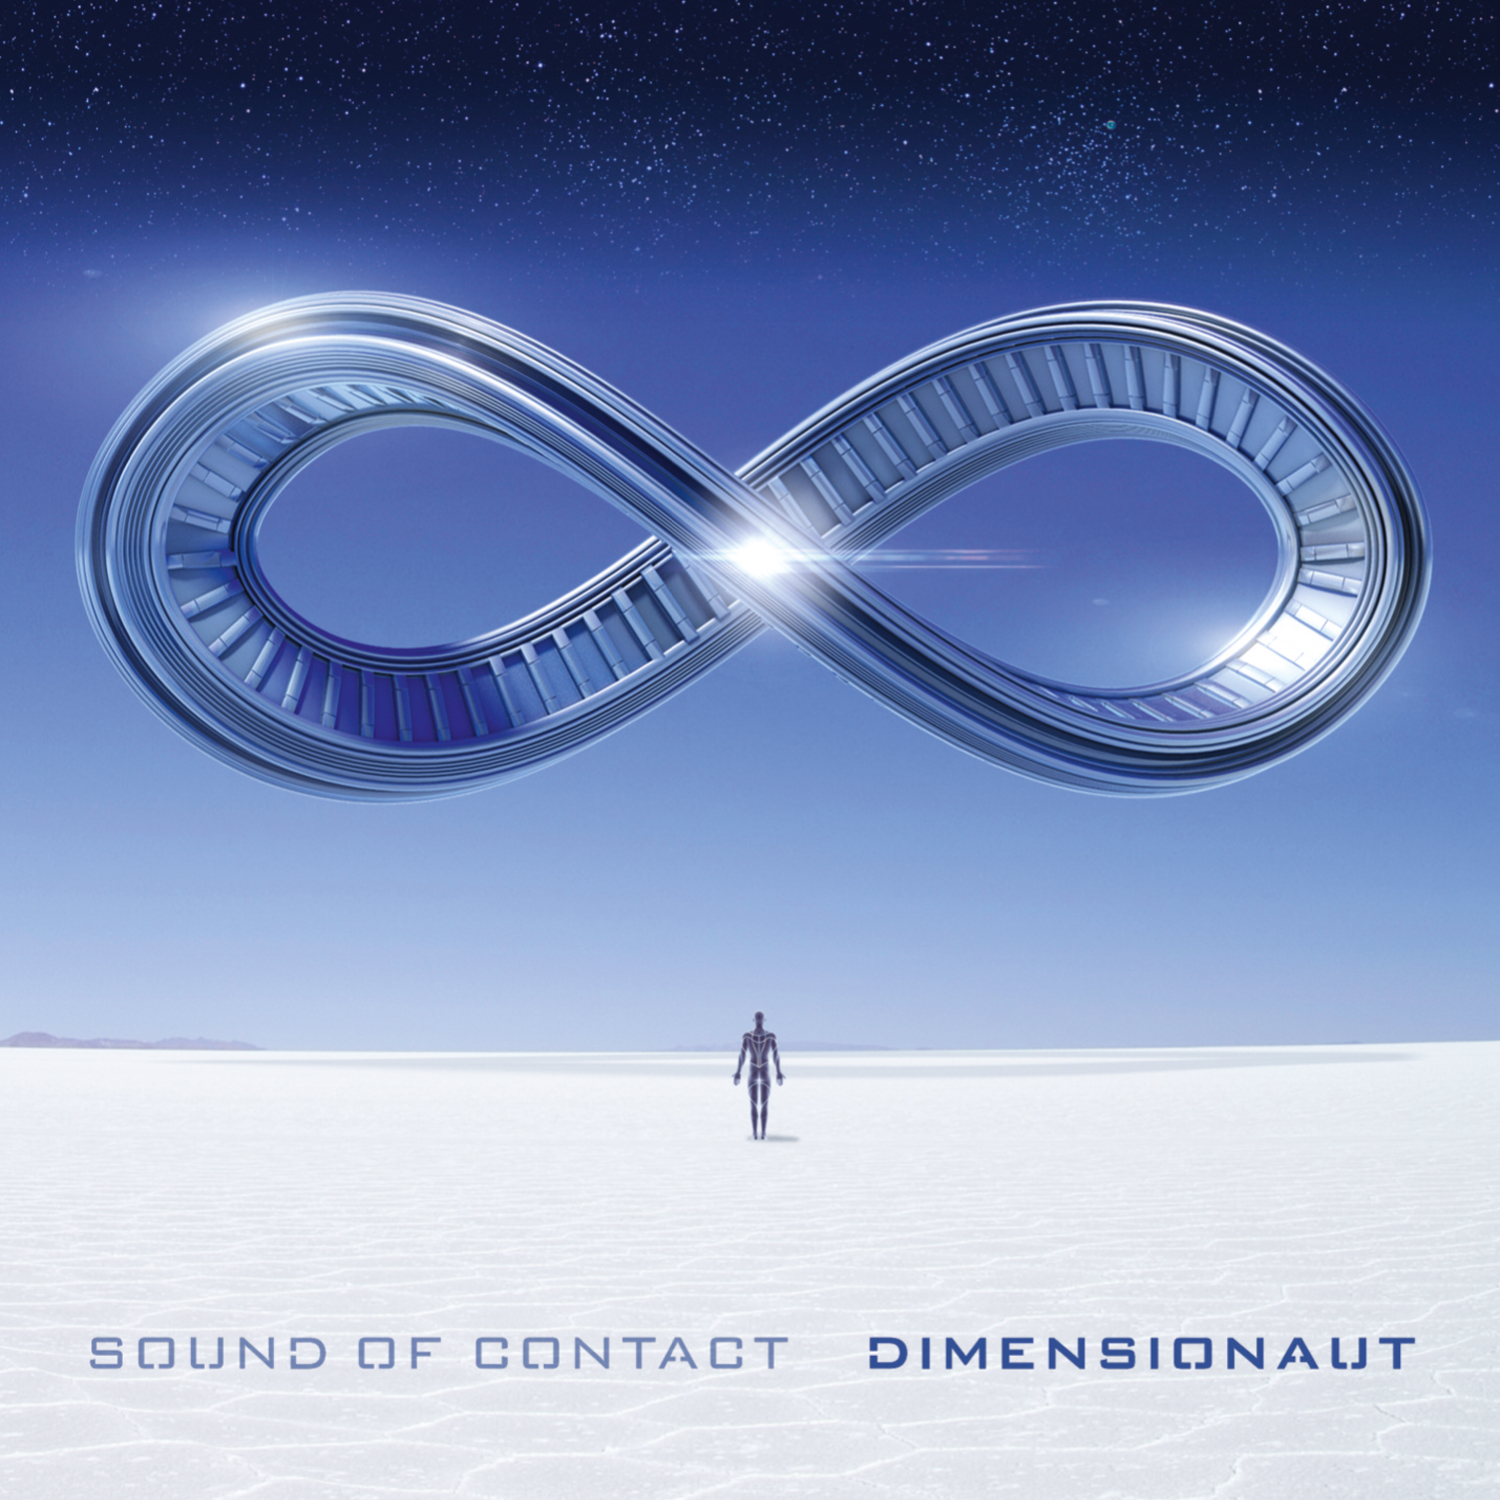 Sound of Contact – Dimensionaut CD Review